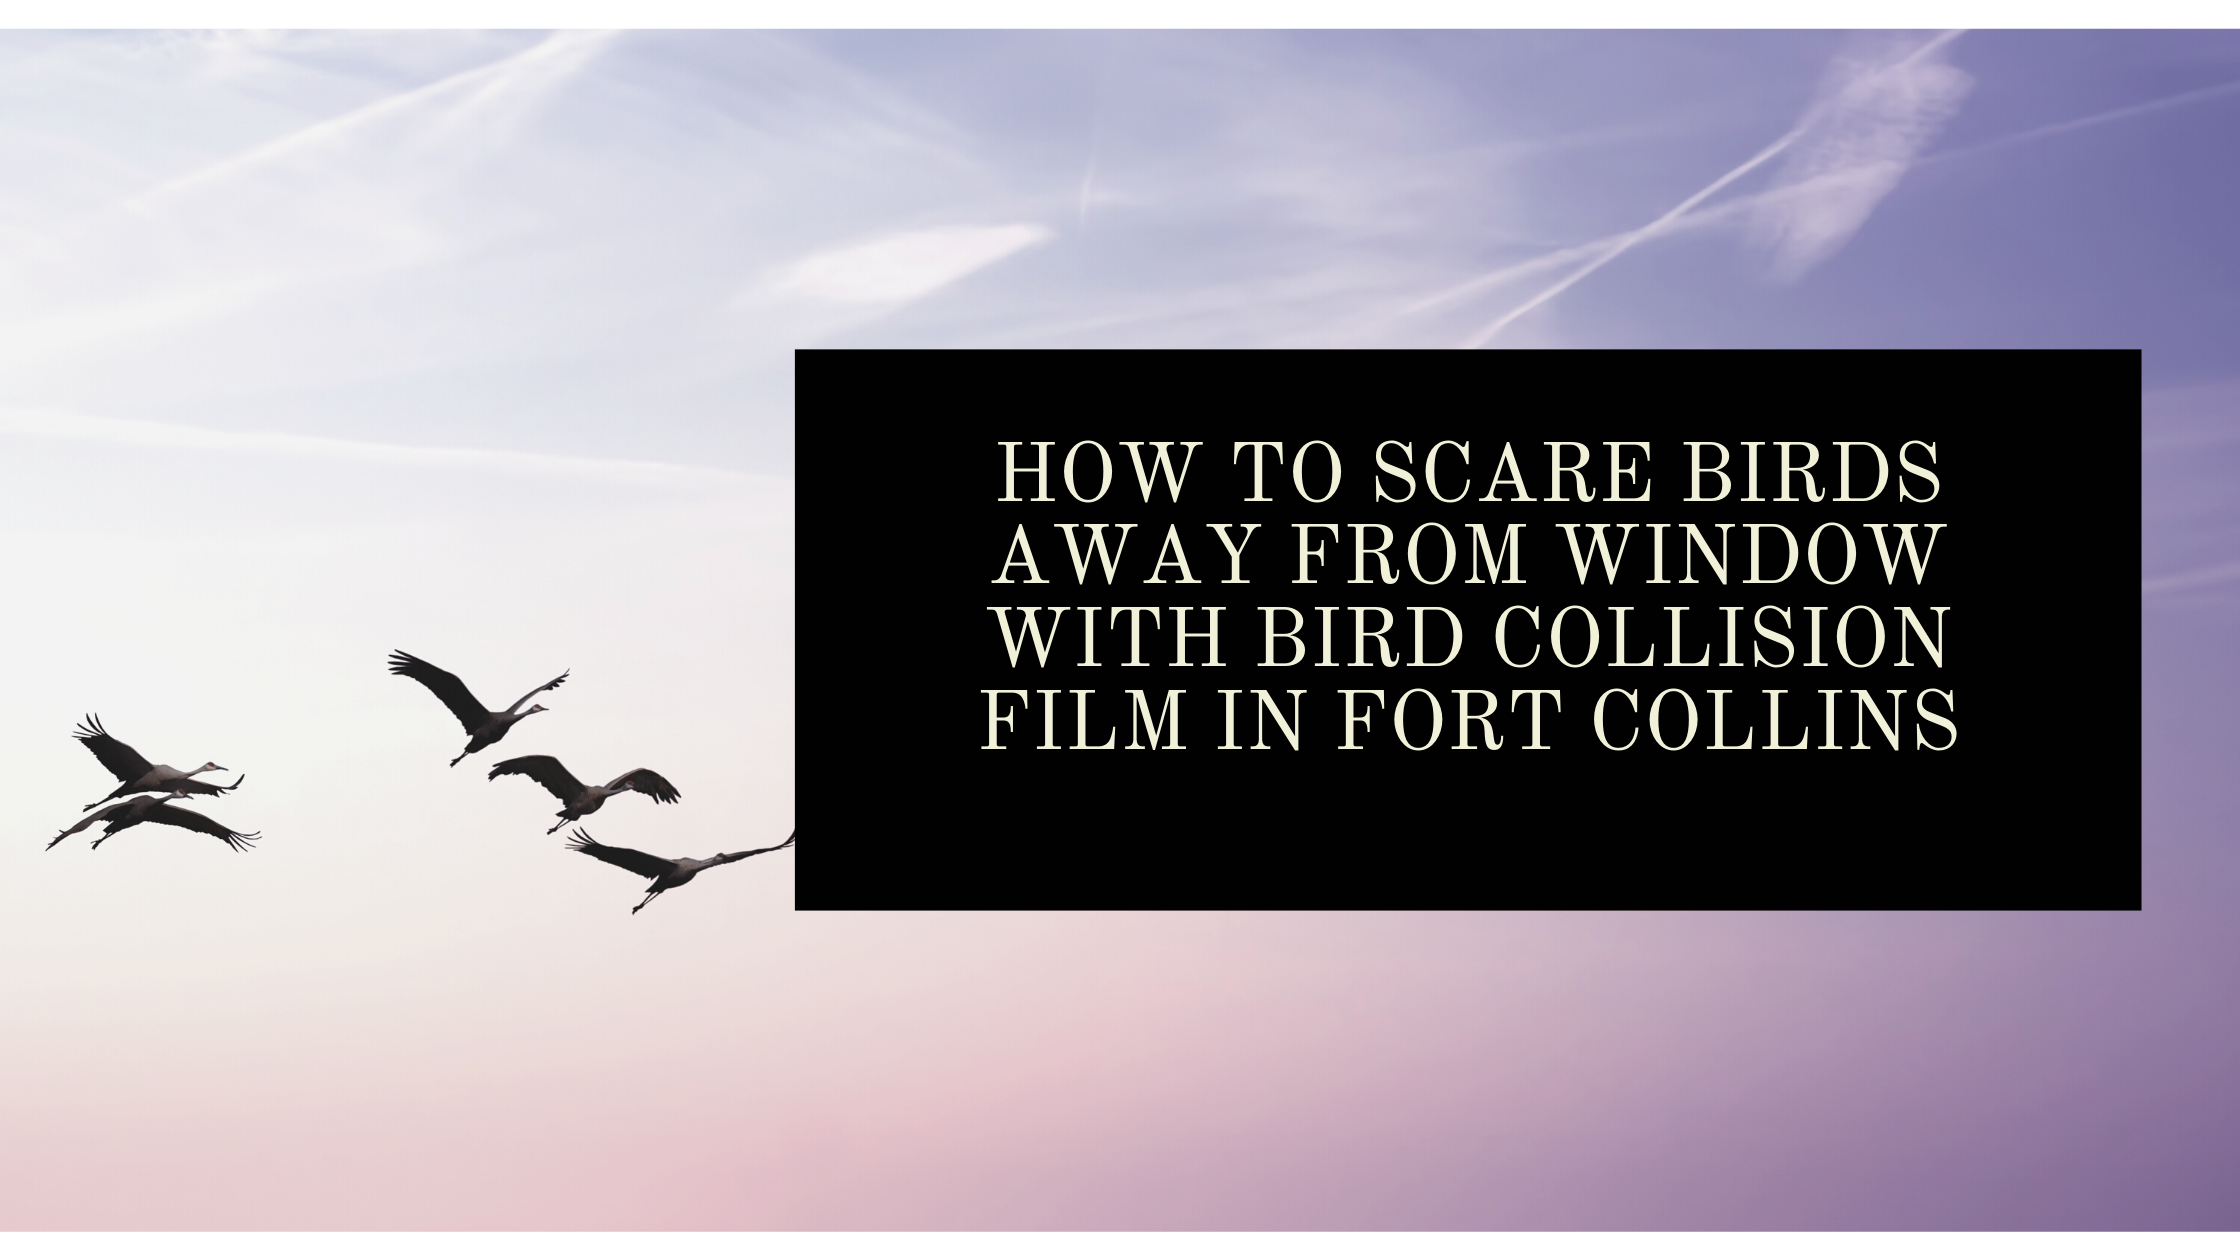 How to Scare Birds Away from Window with Bird Collision Film in Fort Collins